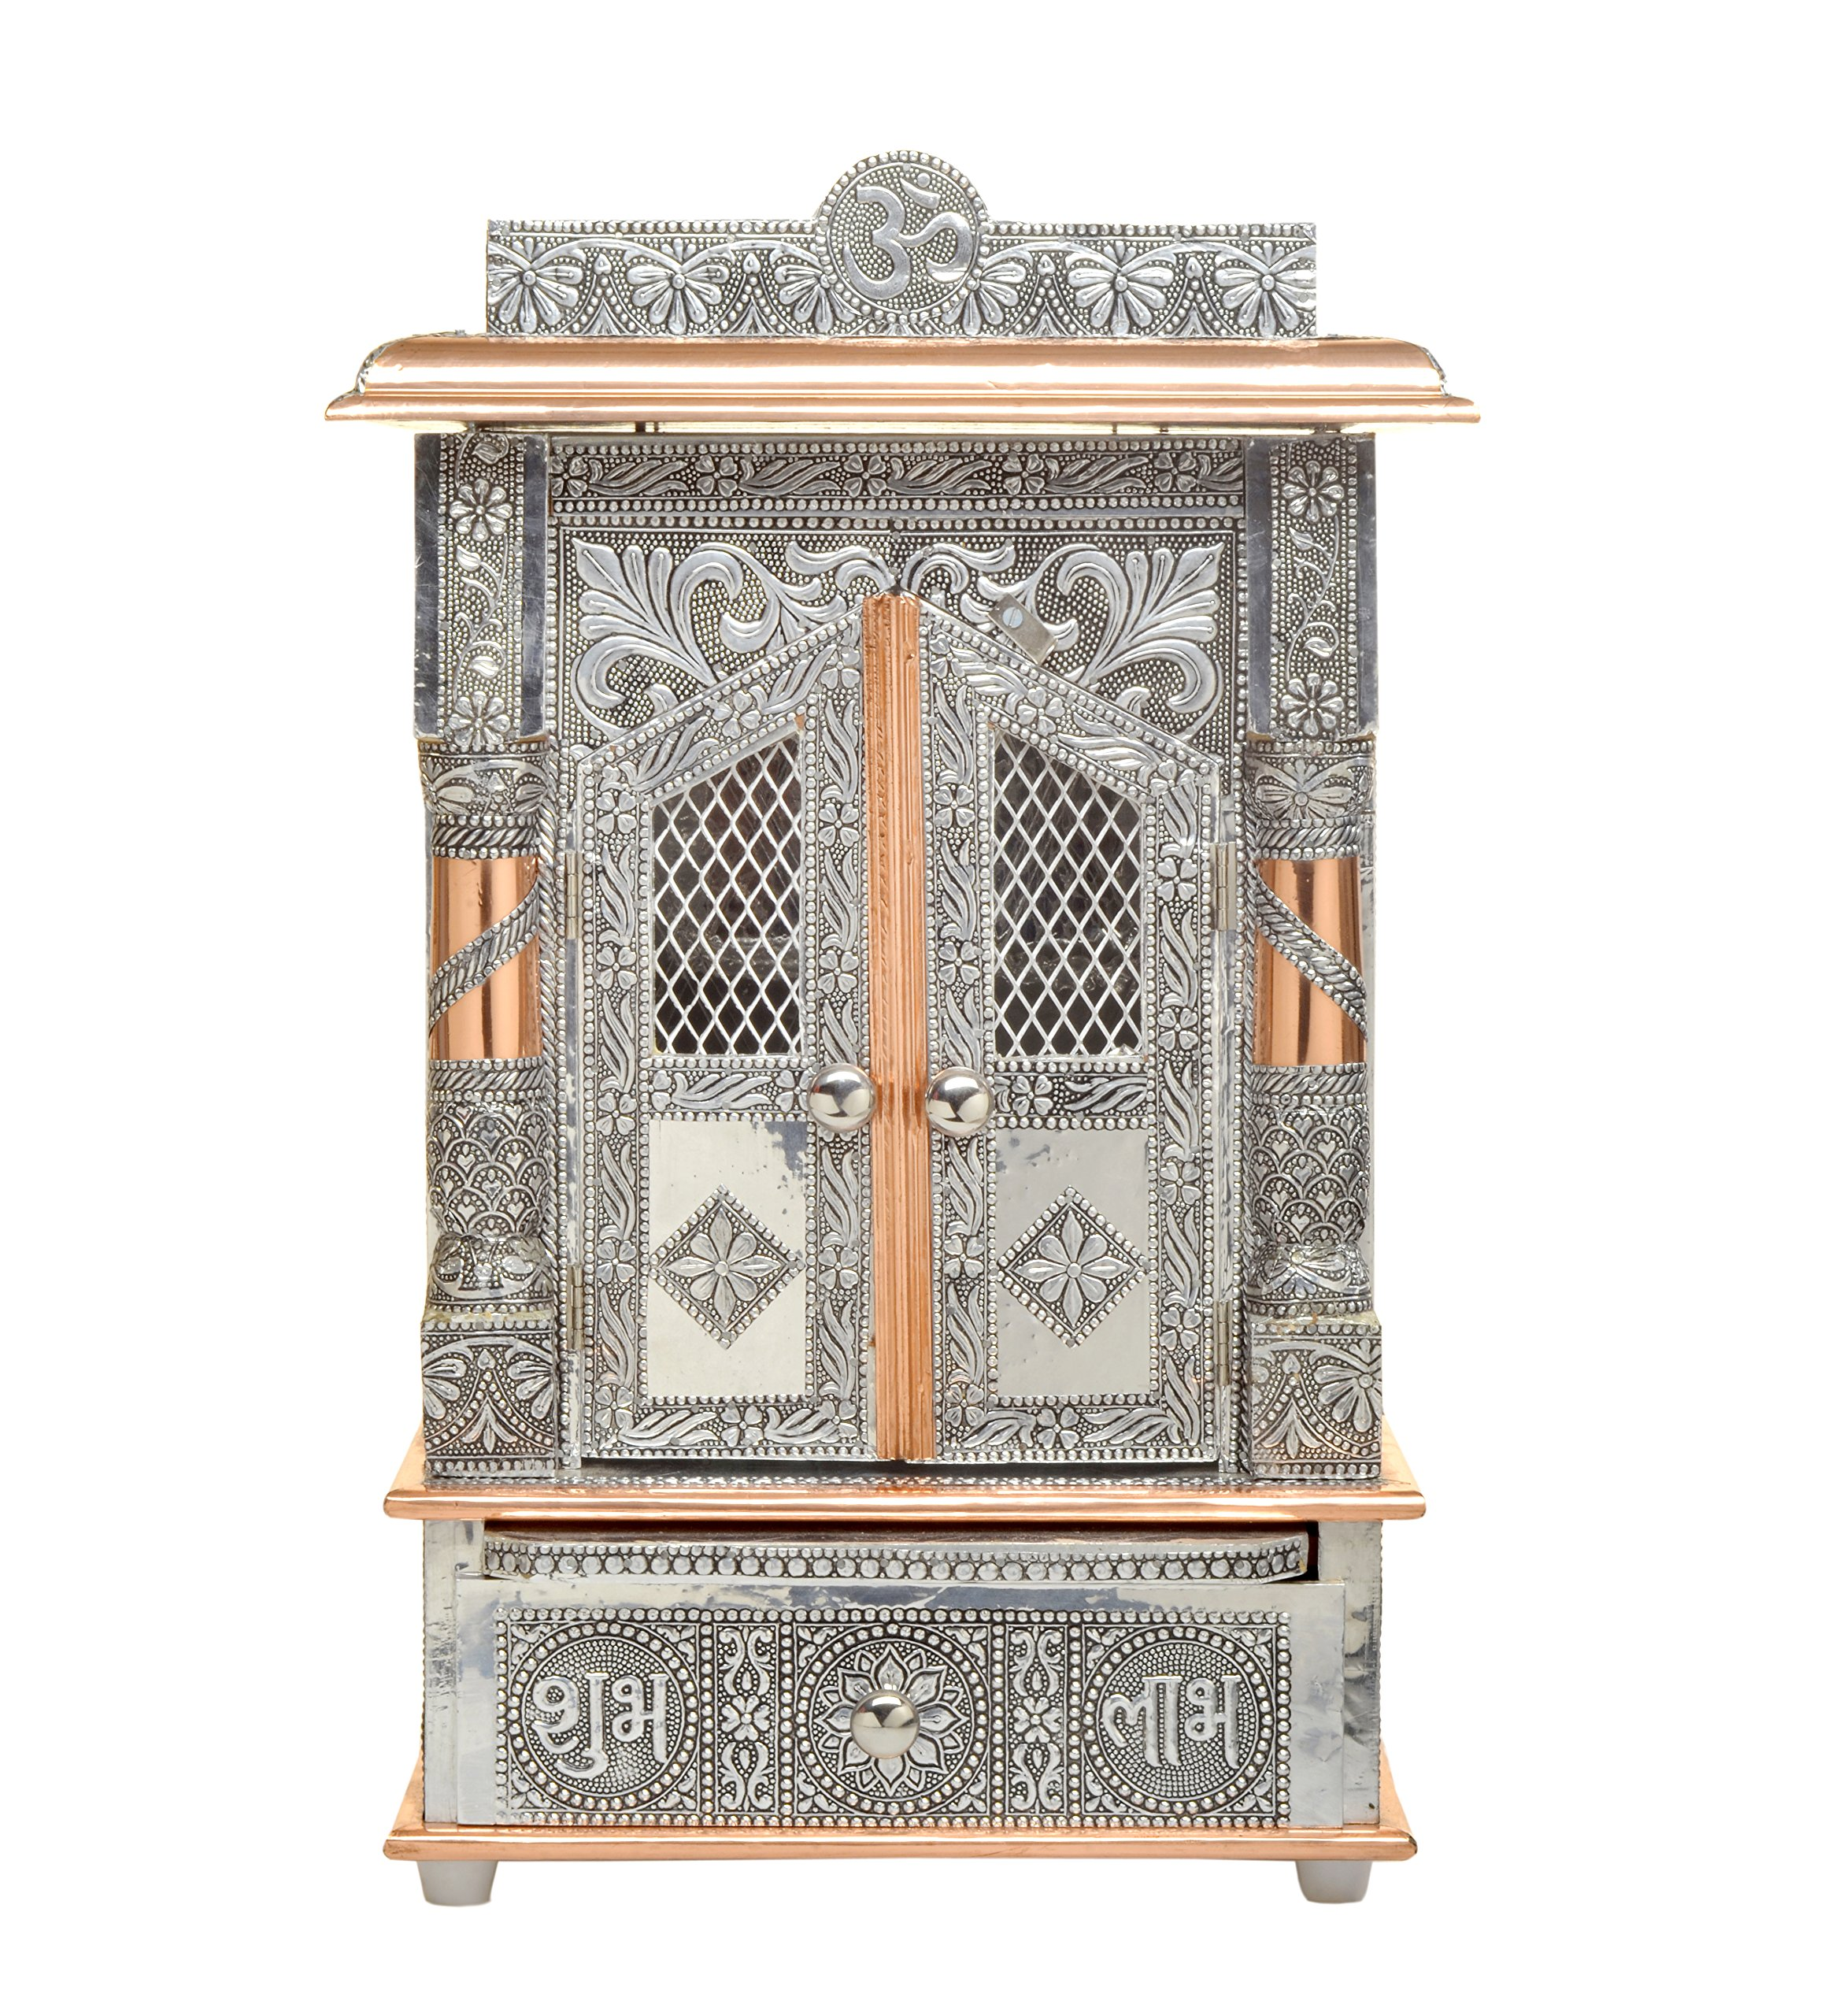 Movie Time Vdieo 59081- DXS Hindu Puja Mandir/Temple/Alter, Aluminum Plated with Doors